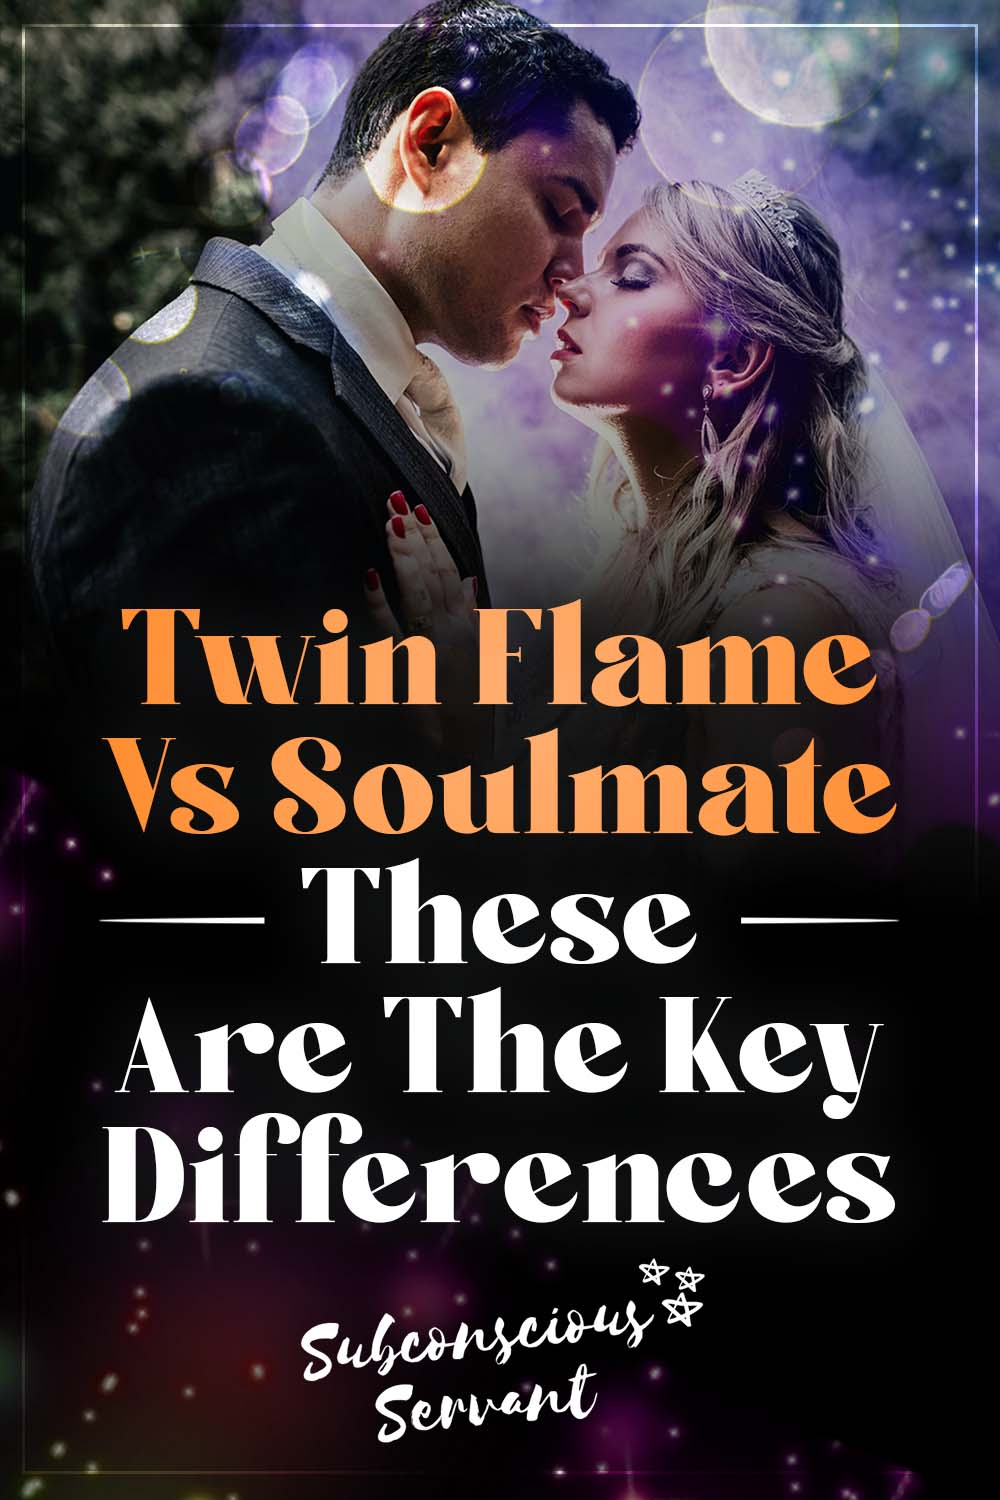 Twin Flame Vs Soulmate - These Are The Key Differences